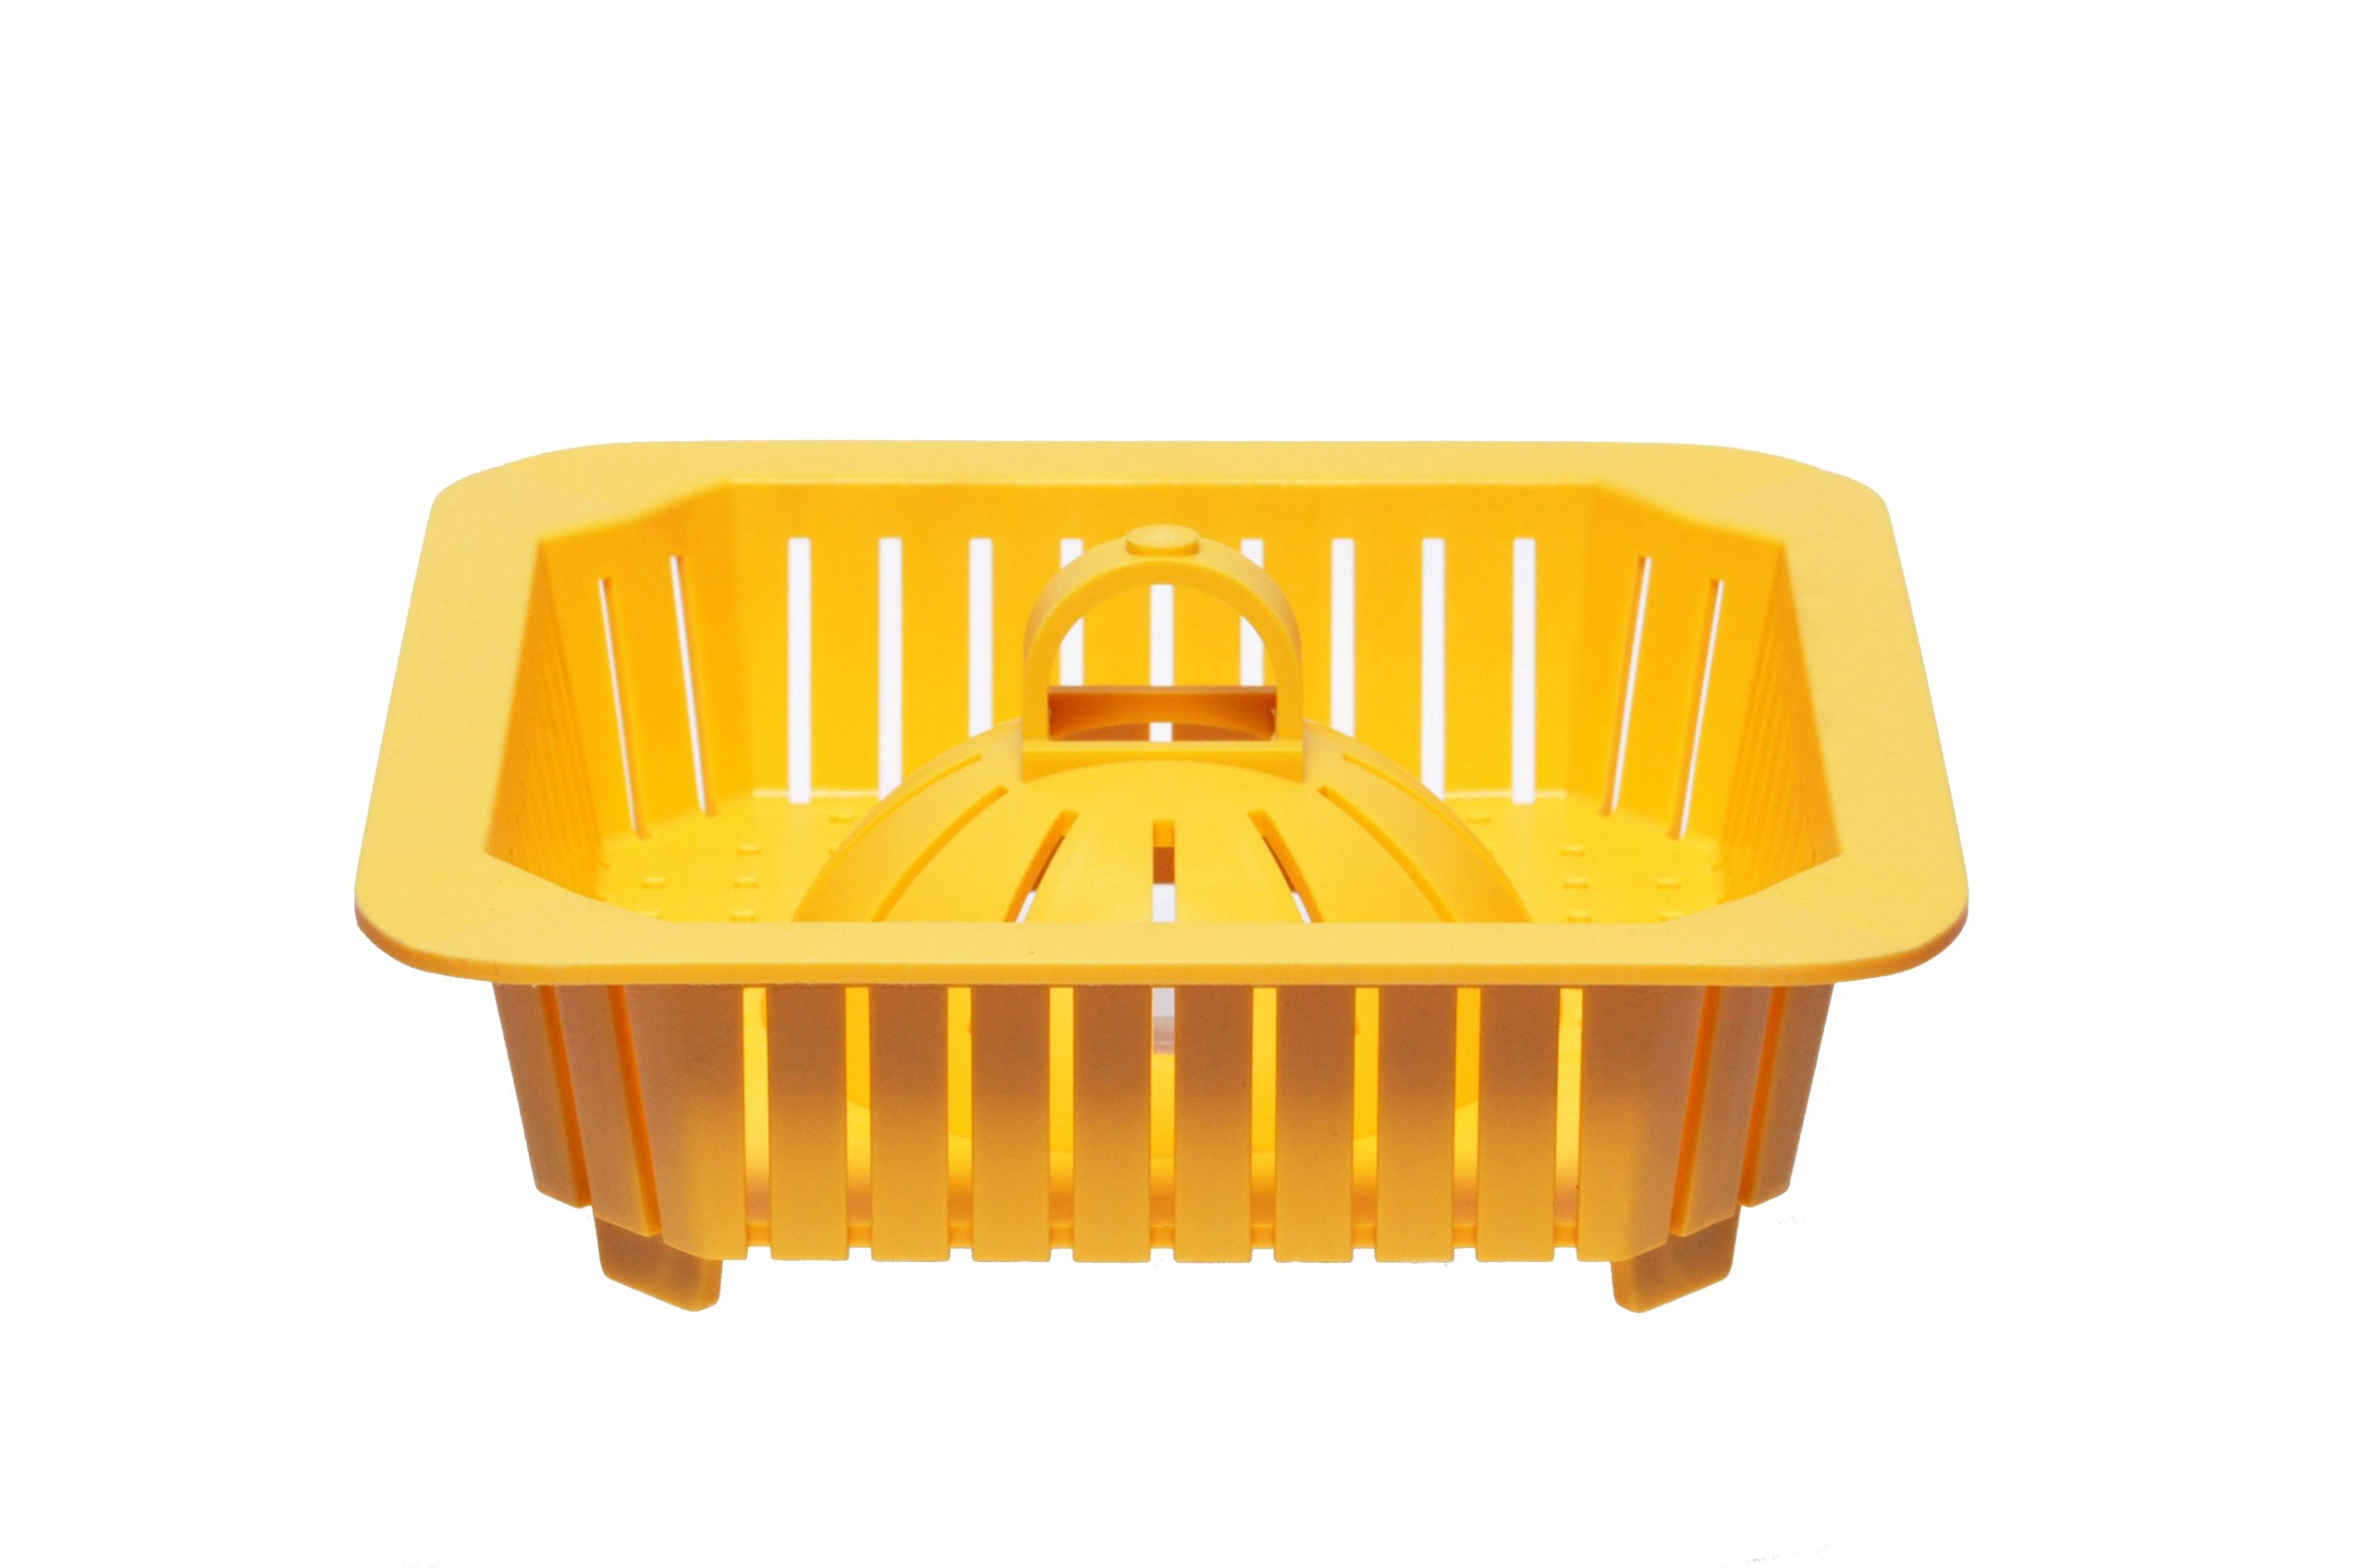 10 1/2 Inch PermaDrain Safety Strainer Basket. Fits 12 Inch Floor sinks. For Zurn, Oatey, Wade, Josam, Smith, and Other Floor Sink Brands. by PermaDrain (Image #1)